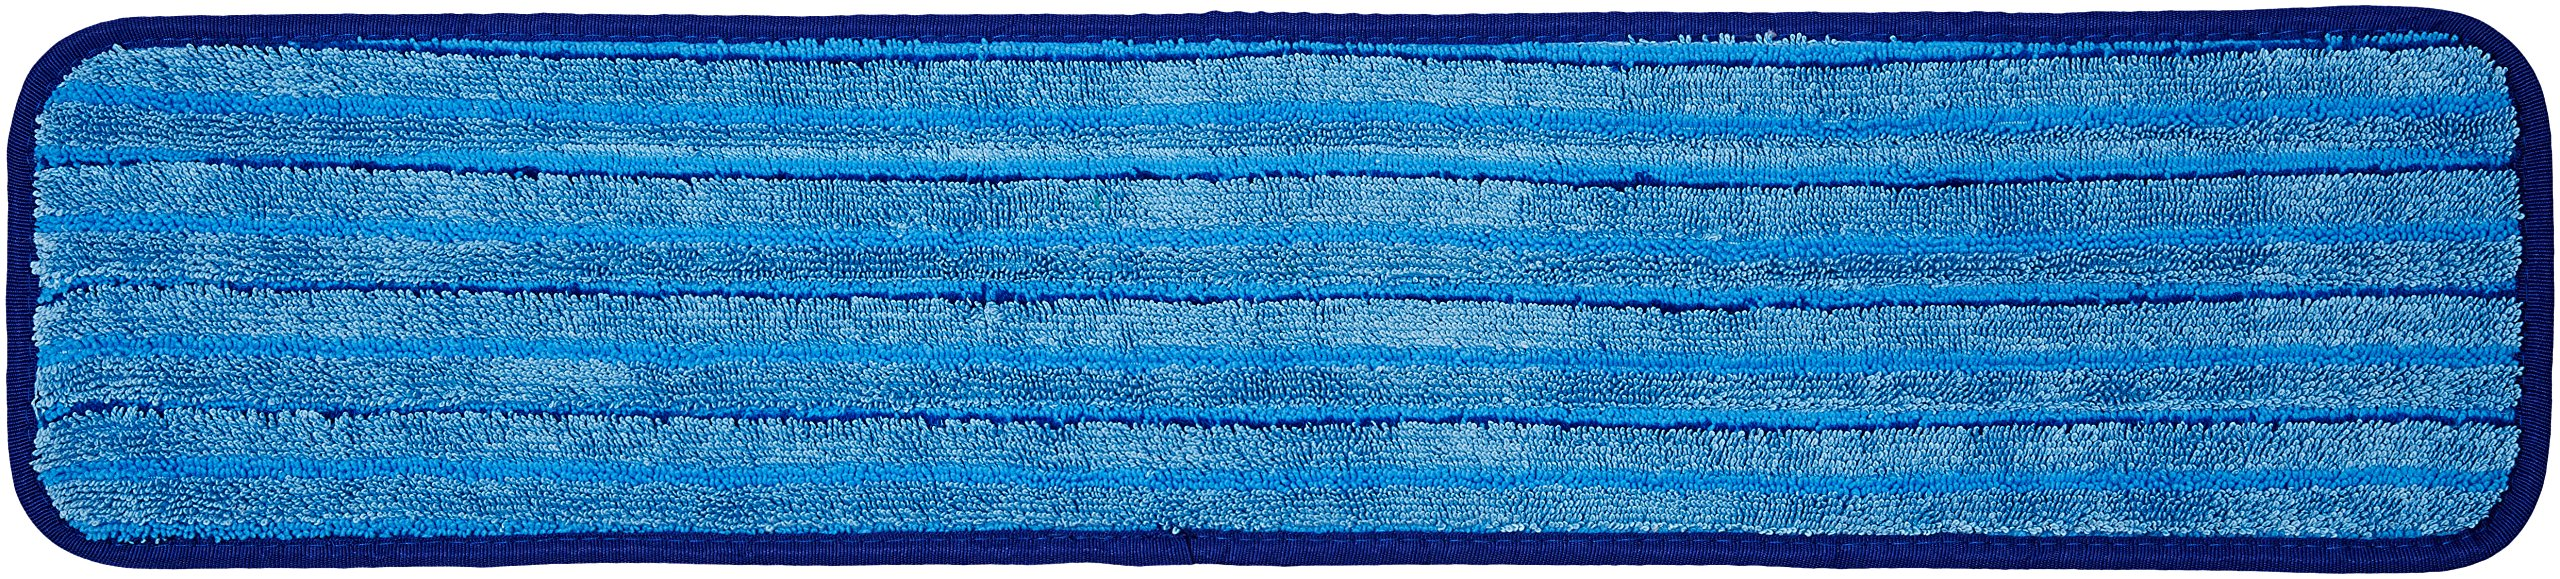 AmazonBasics Microfiber Damp Mop with Stripes, 24-inch - 12-Pack